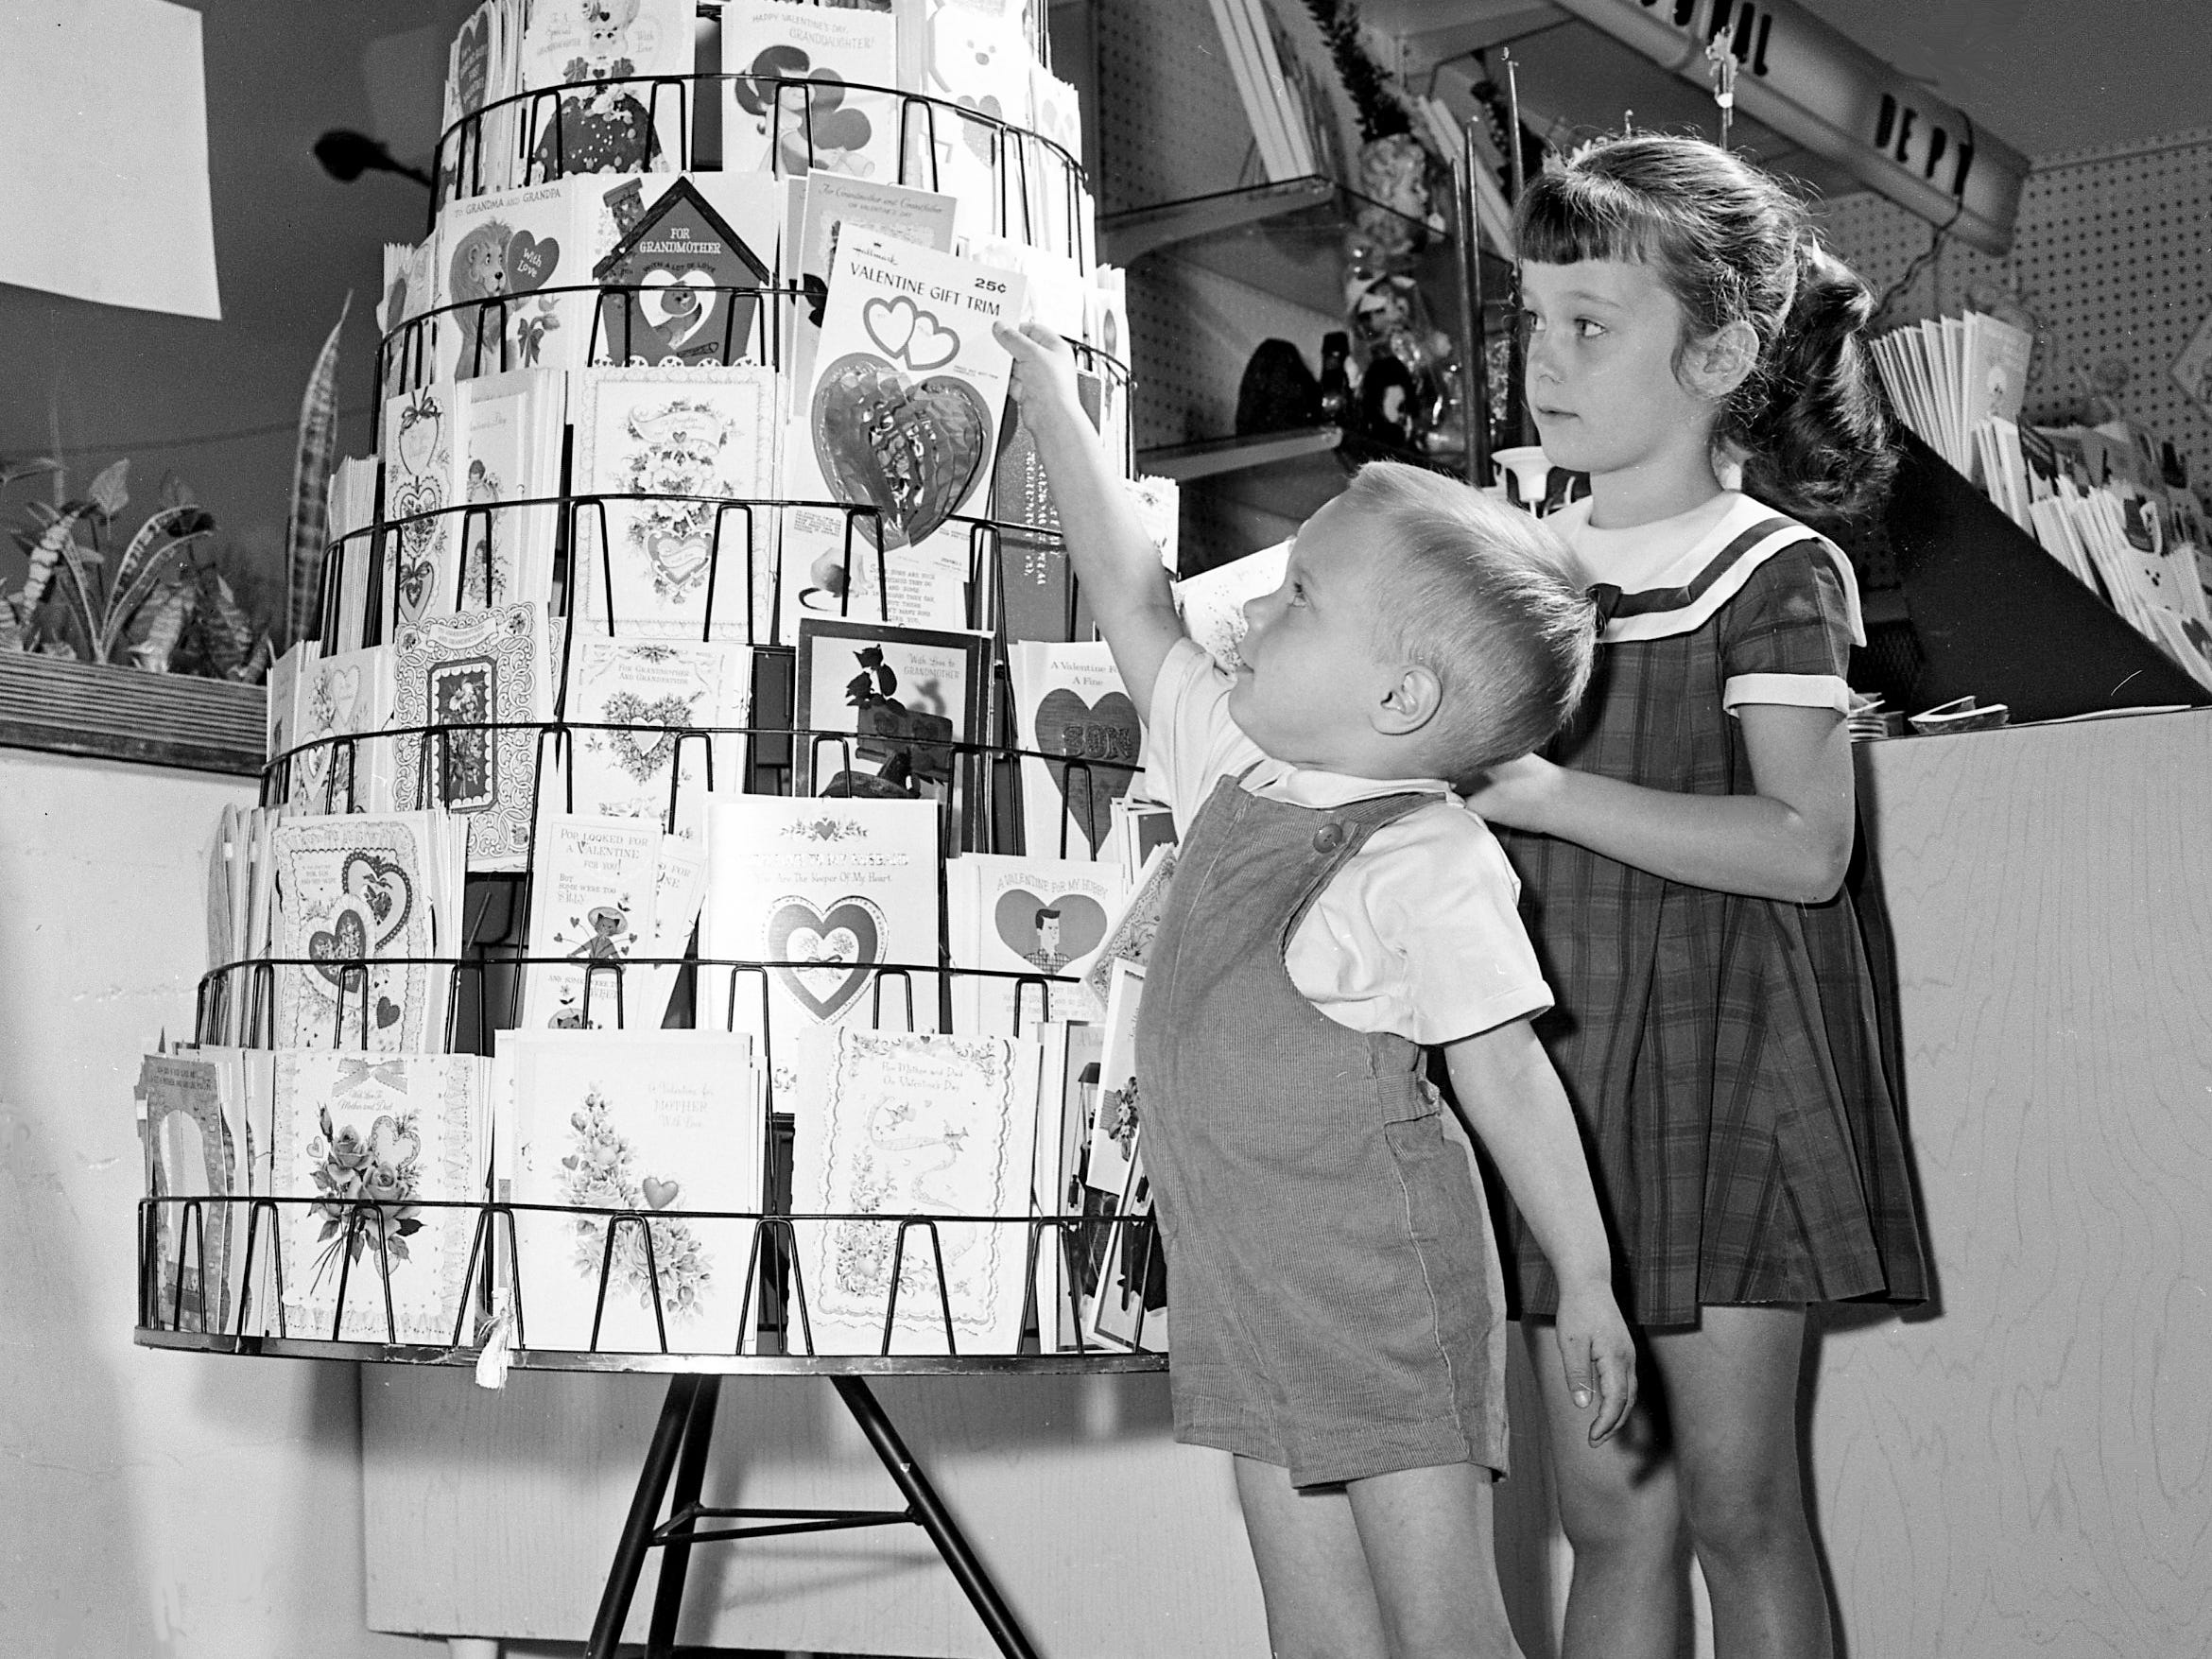 Selecting his special Valentine is William J. Elliston III, who is getting assistance from his sister, Elizabeth, at a local store Feb. 6, 1964.